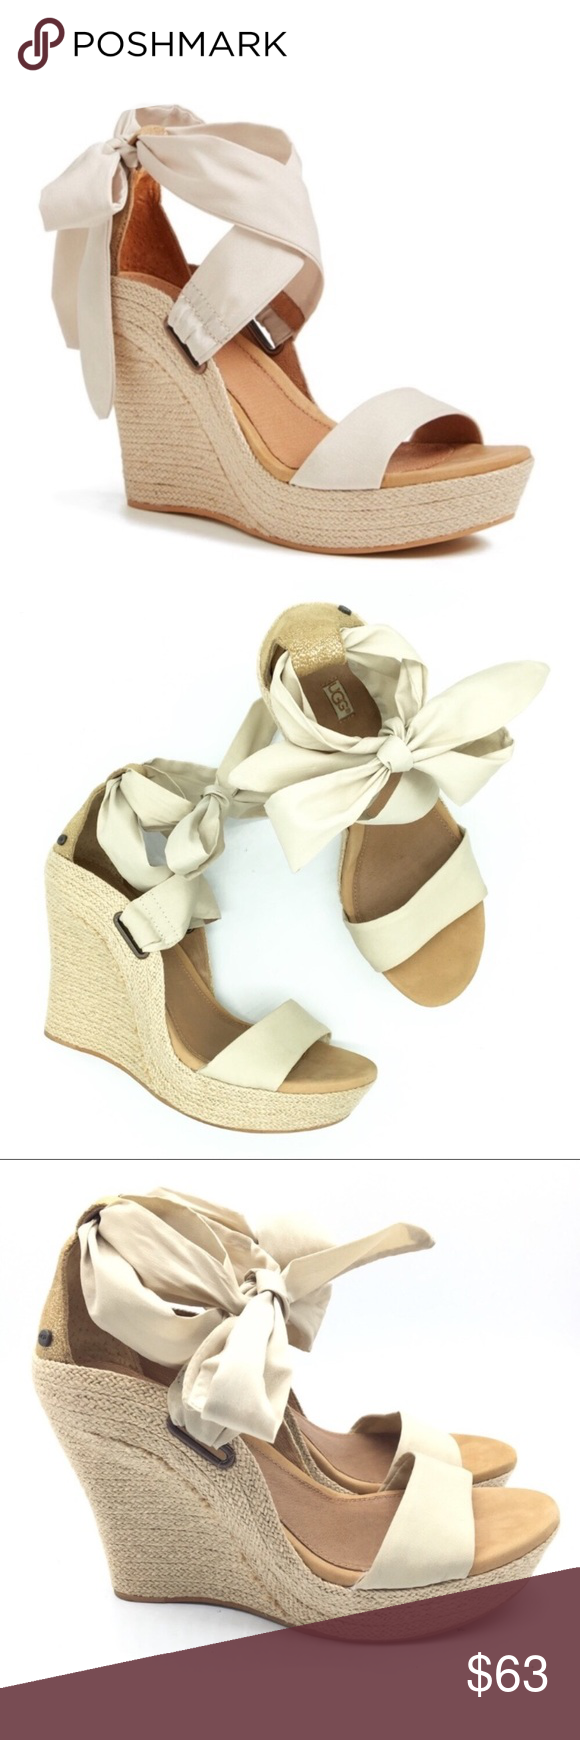 08a4fd8f741 Ugg Jules Platform Espadrille Wedge Sandal Sz 8 Ugg Jules Platform  Espadrille Wedge Sandal w  ankle tie Size 8. Fits true to size The perfect  nude color ...